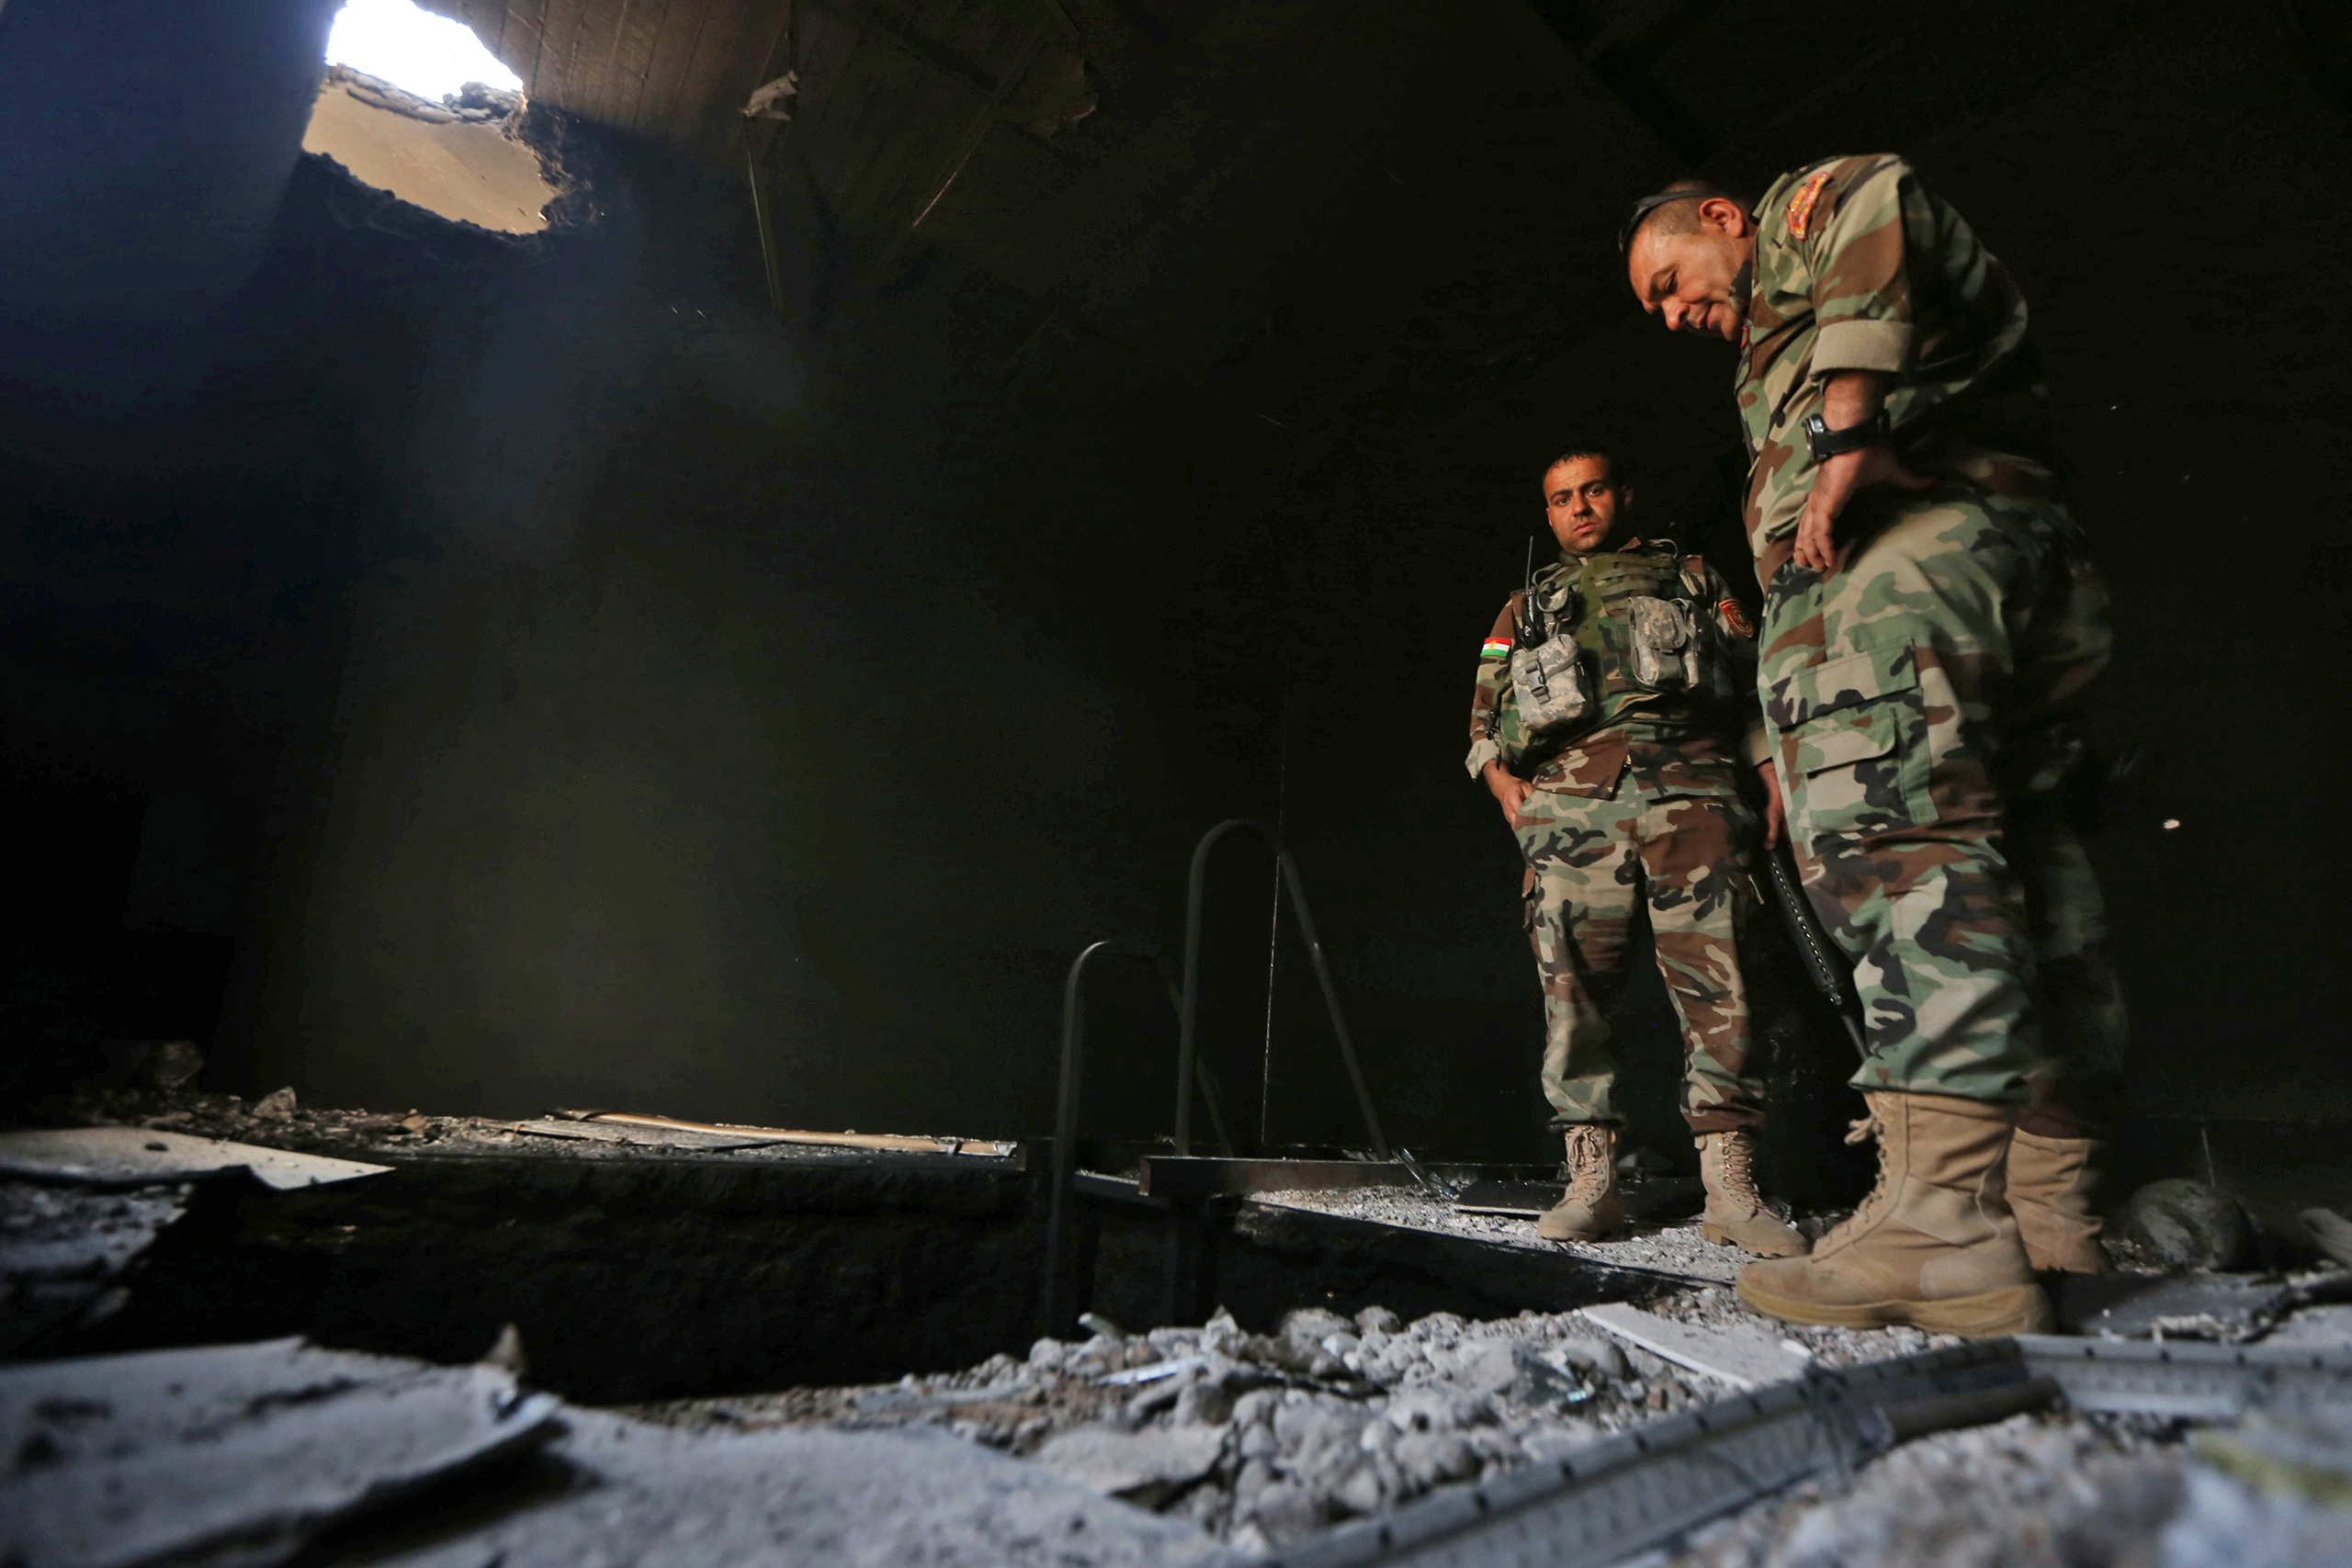 Kurdish Peshmerga forces inspect a tunnel inside a building in the Shaqouli village, about 35 kilometers east of Mosul, after they've recaptured it from ISIS on Oct. 18, 2016.